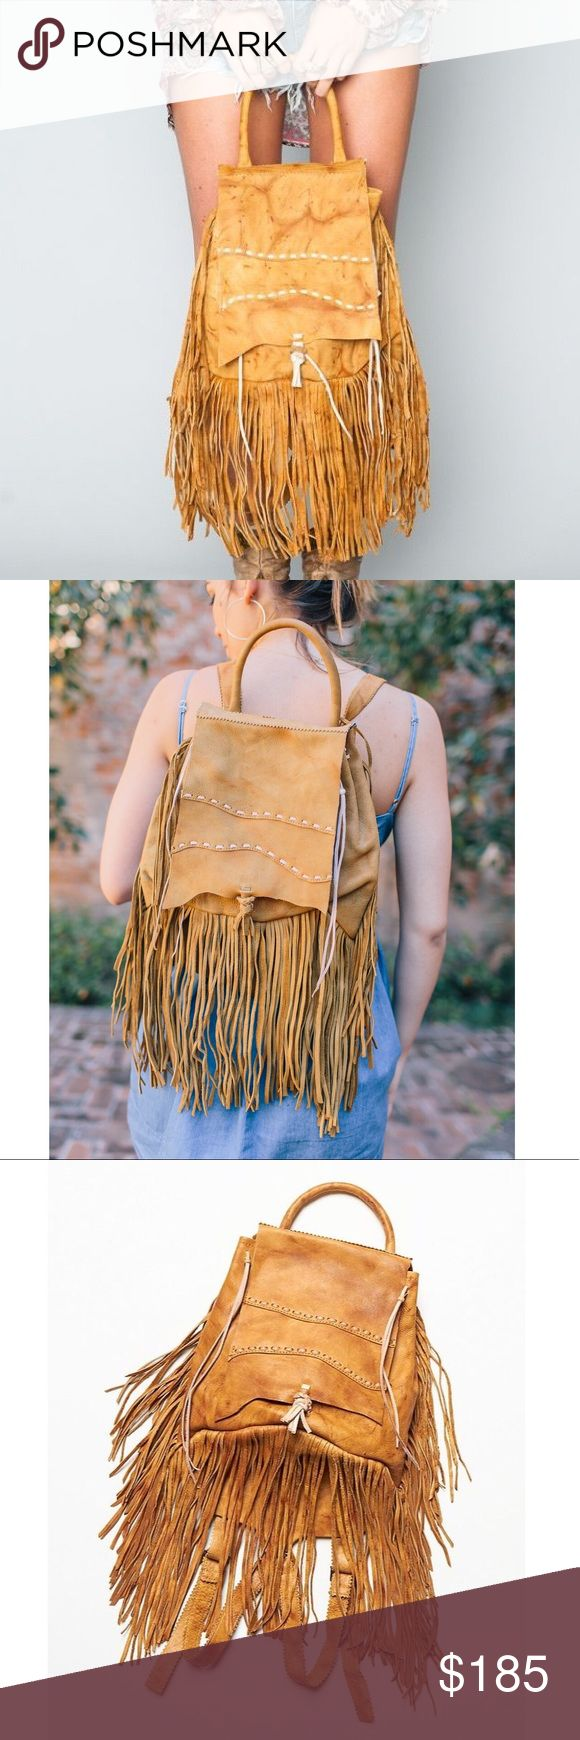 "Pamela V for Free People Rochelle leather backpack Can one ever go wrong with fringe? This dream of a backpack is fit for festival season or even just trotting around town in throughout the day. Features incredible, leather work detail & is handmade in Peru.   Materials: 100% Genuine Leather, not lined.  Color: Weathered Tan  Measurements: Length: 16, With Fringe: 26"", Width: 11"" (Adjustable straps) Free People Bags Backpacks"